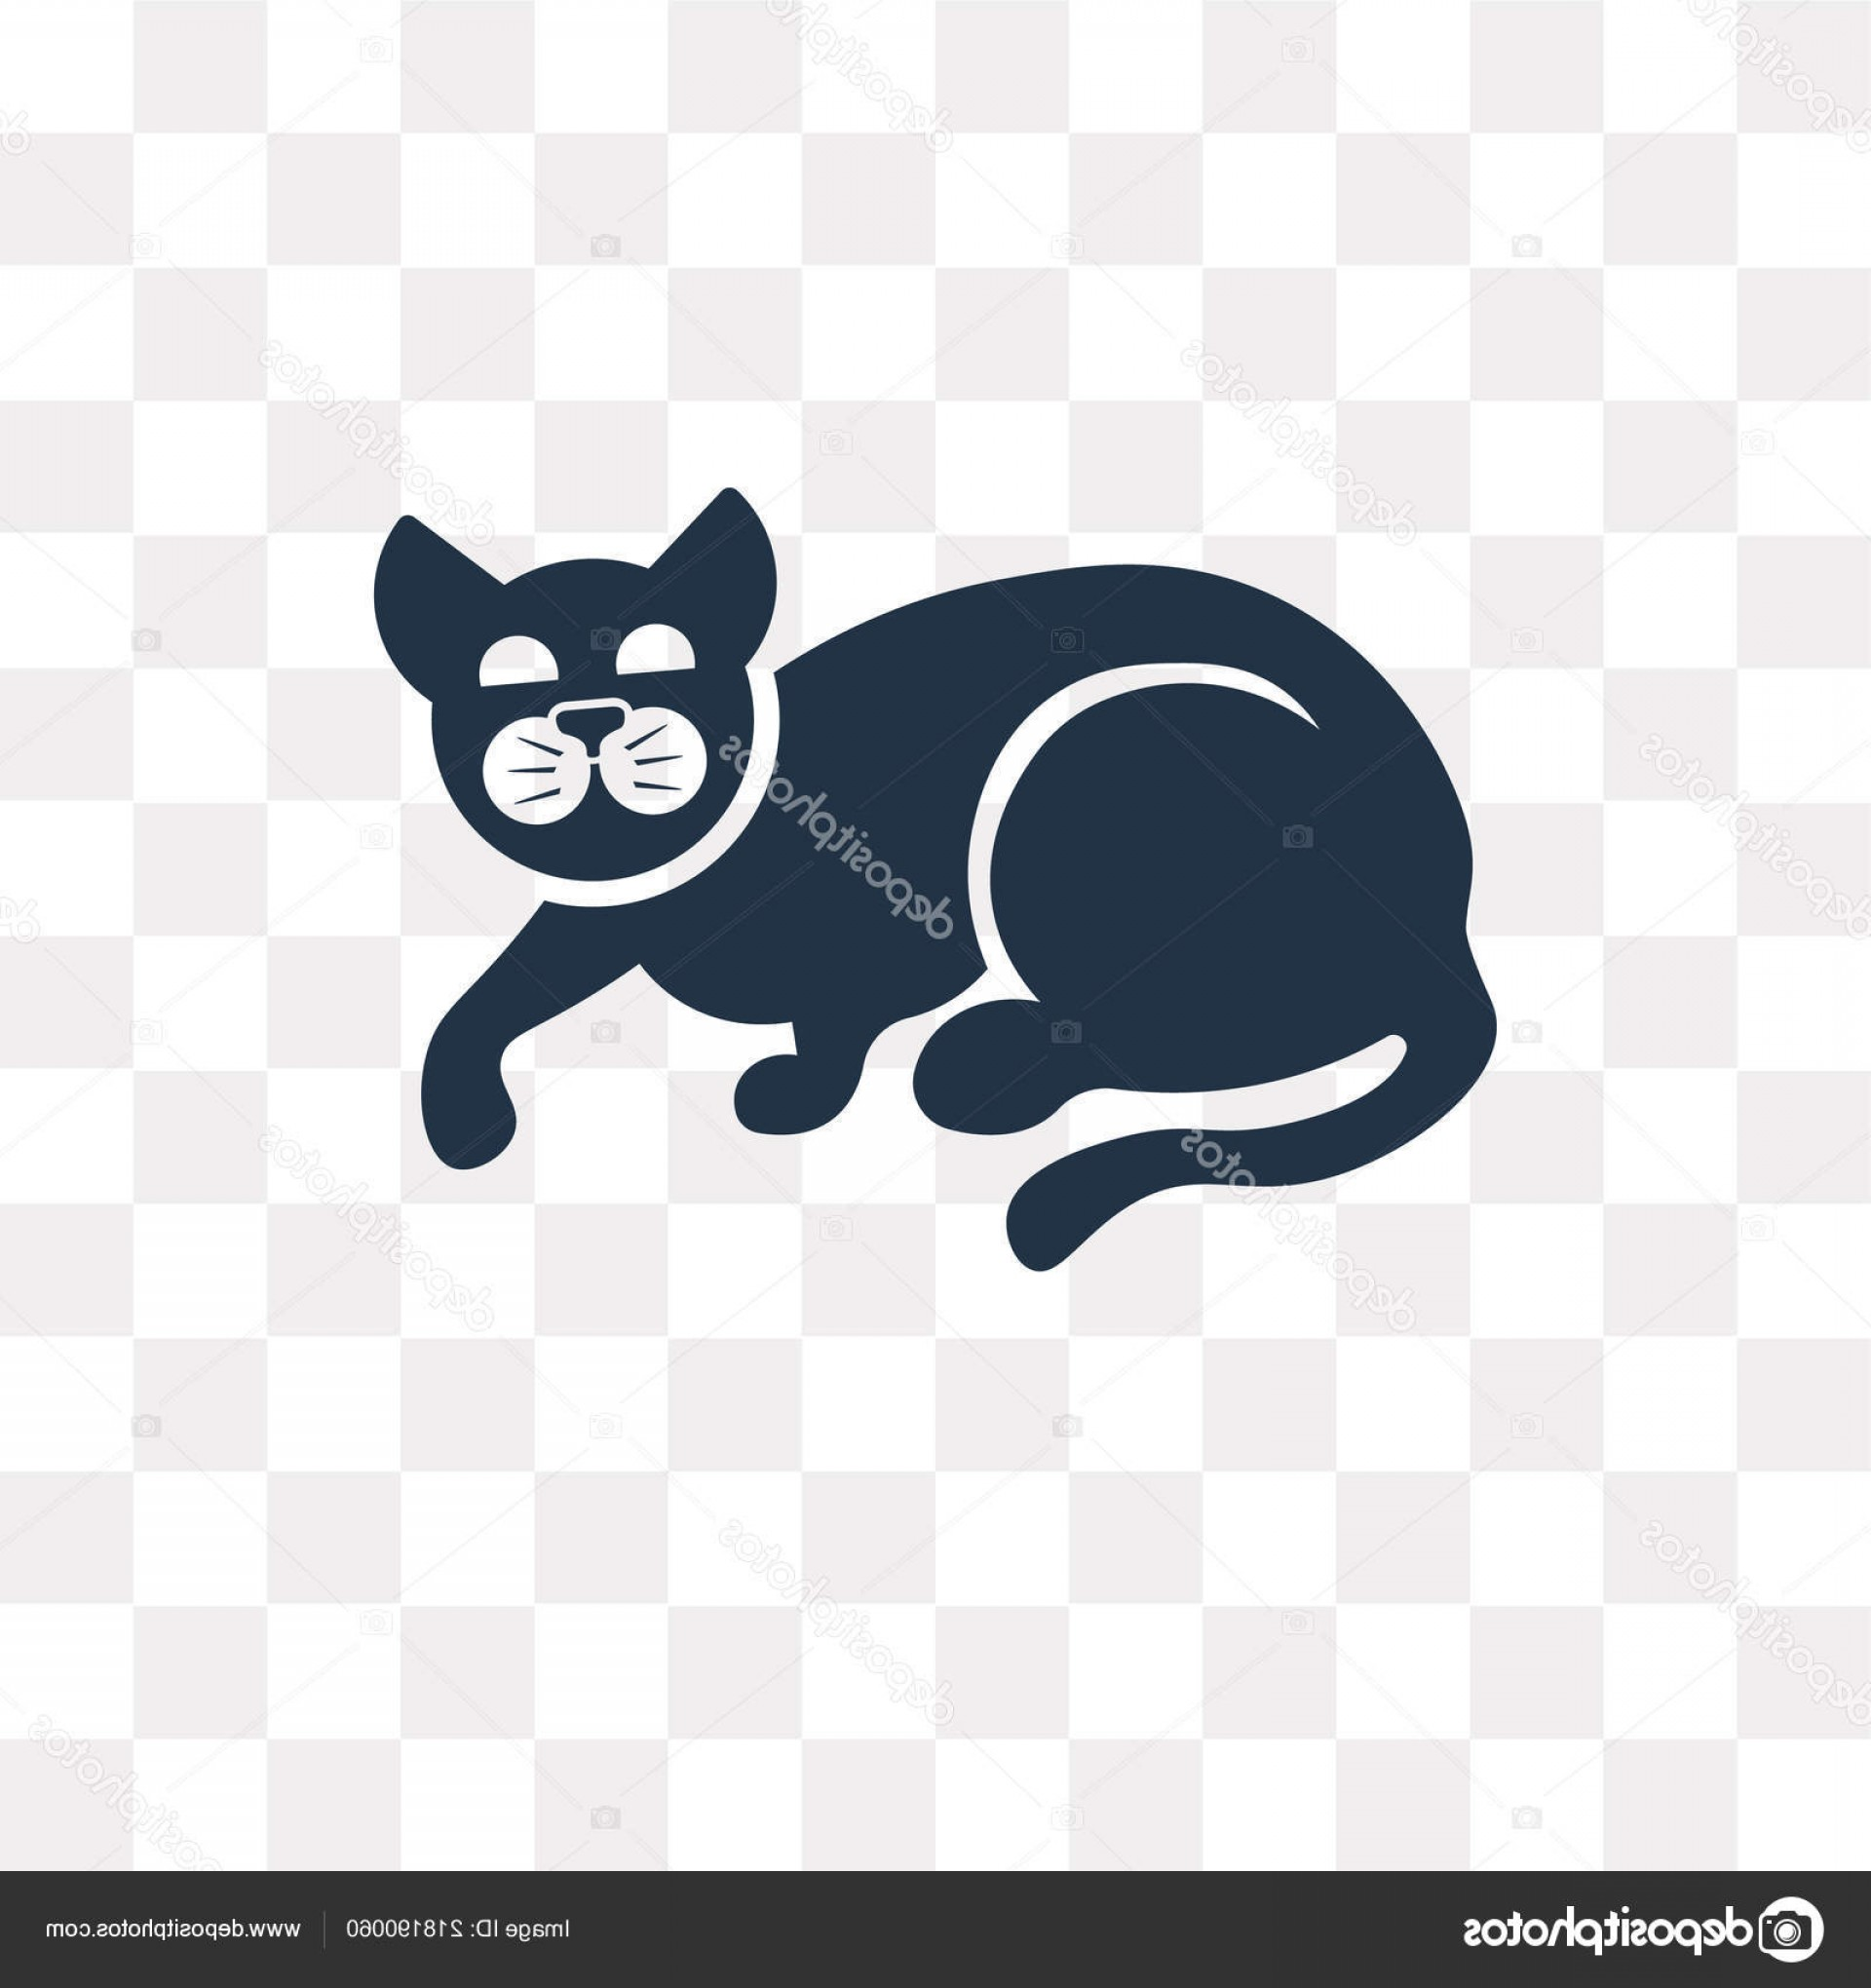 Siamese Cat Vector Transparent Background: Stock Illustration Cat Vector Icon Isolated Transparent